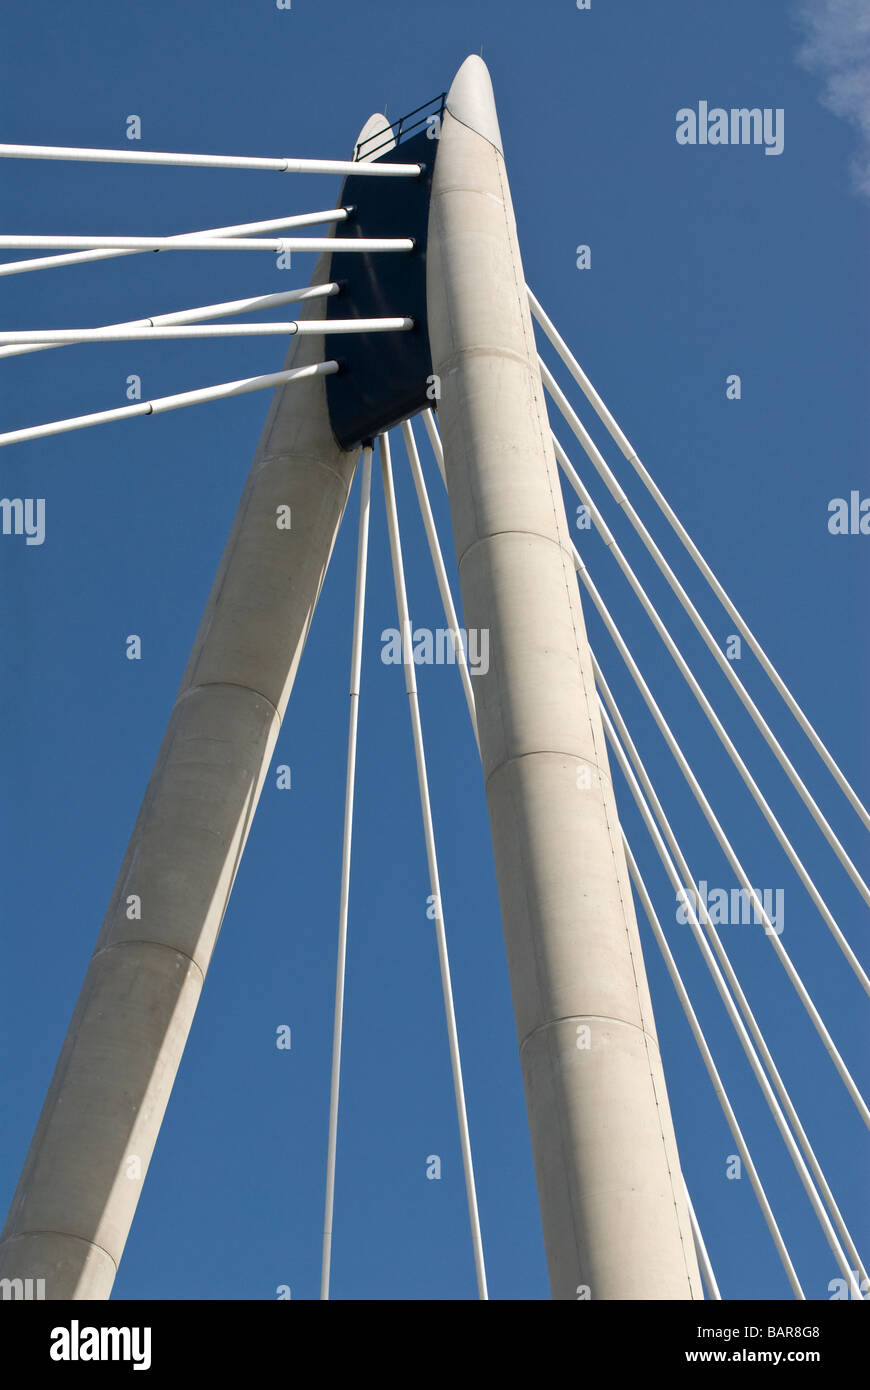 Southport Bridge Structure - Stock Image